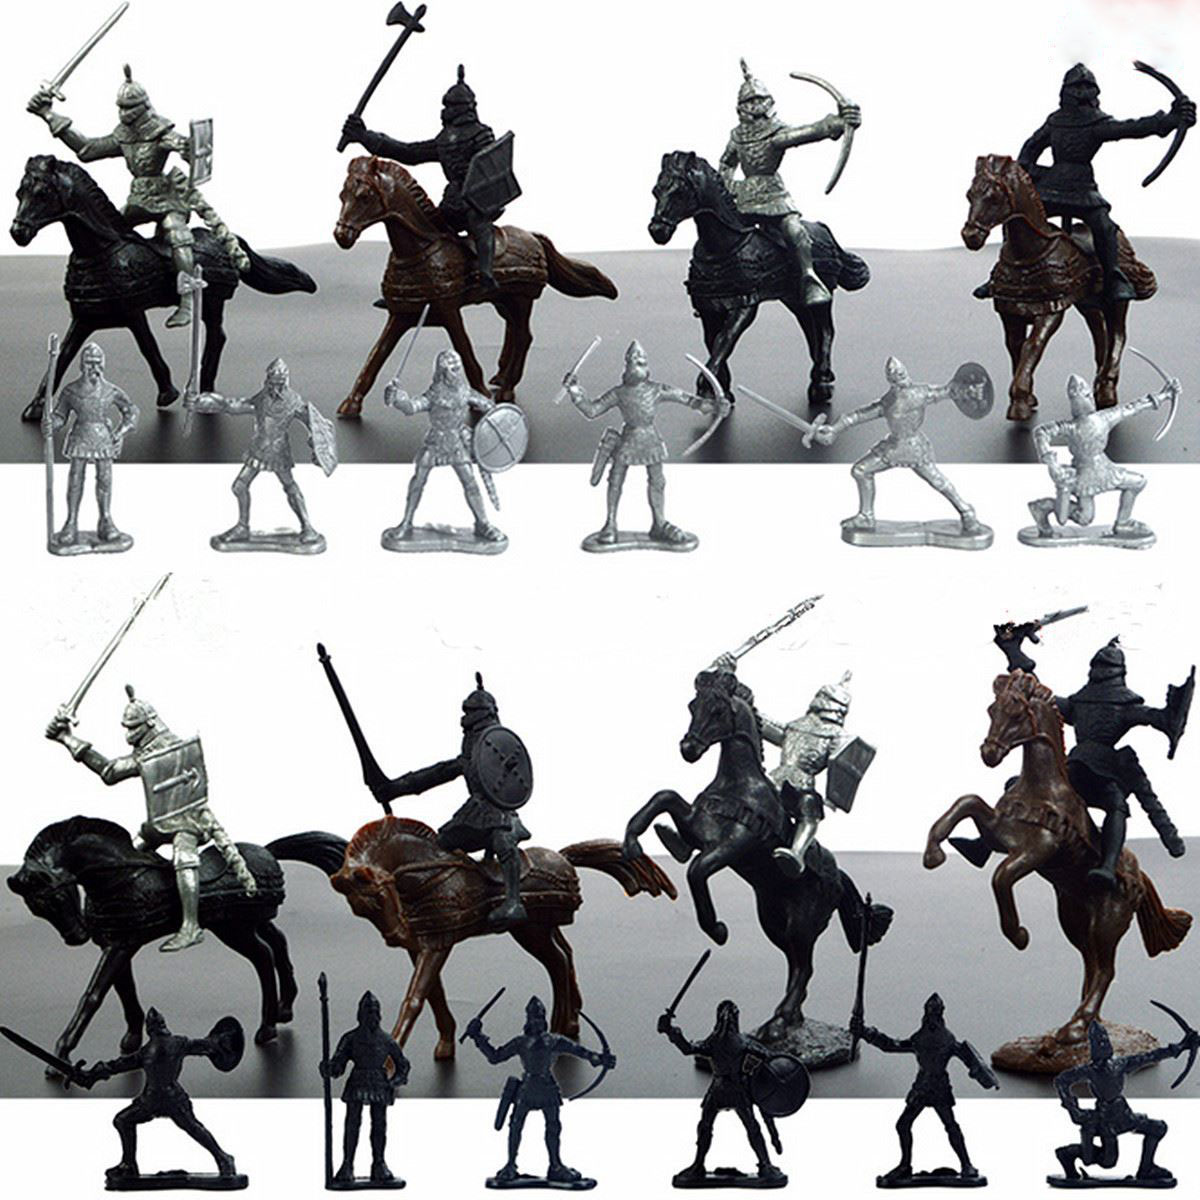 28pcs/set Knights Warrior Horses Medieval Toy Soldiers Figures Playset Mini Model Toys Gift Decor For Children Adult 12pcs set children kids toys gift mini figures toys little pet animal cat dog lps action figures